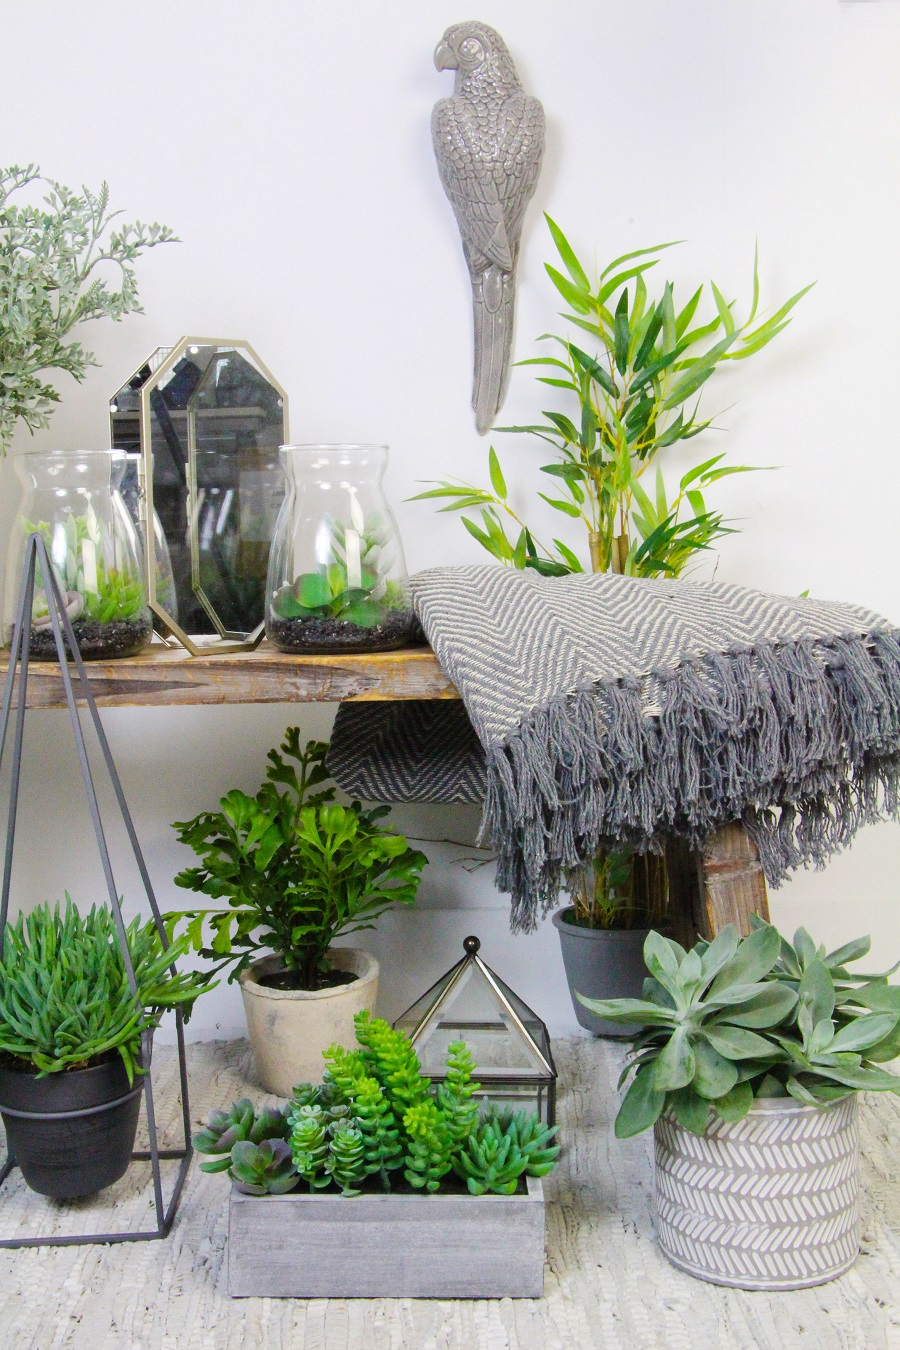 Styling With House Plants - mix plant species and containers